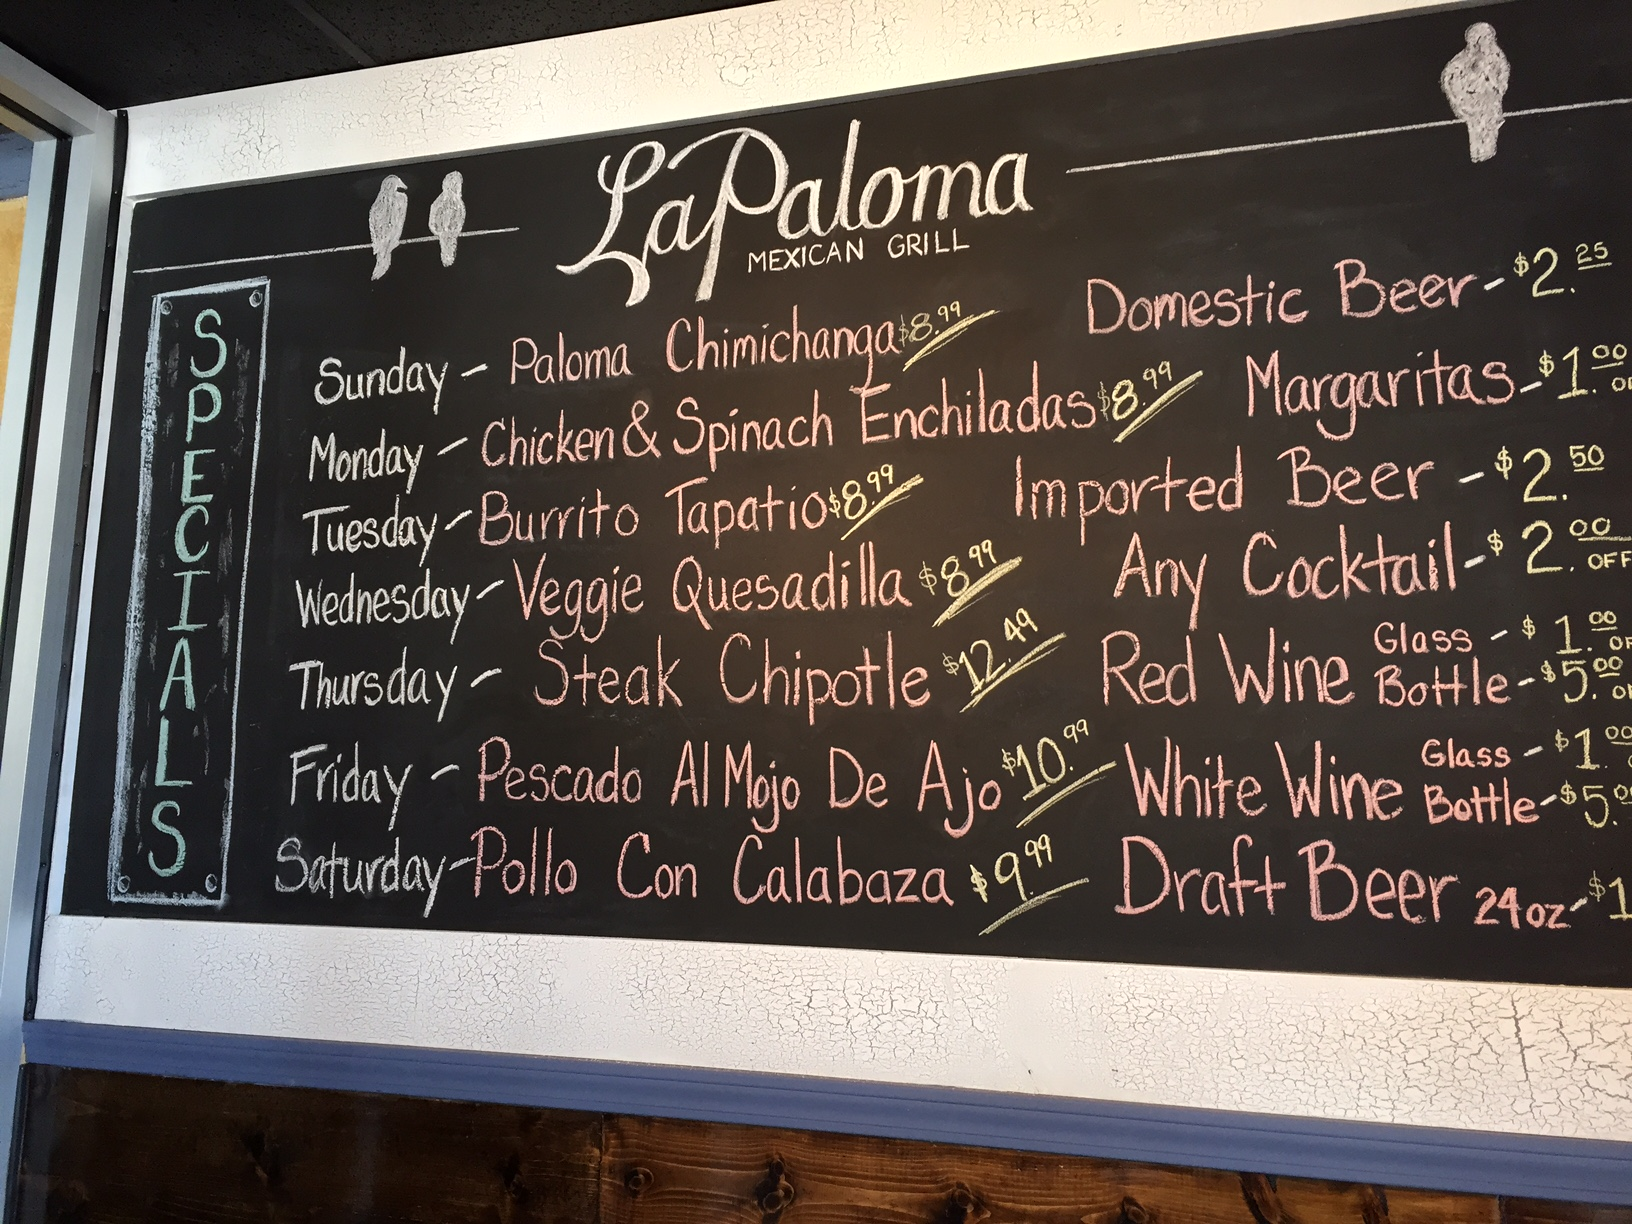 Daily food and drink specials.